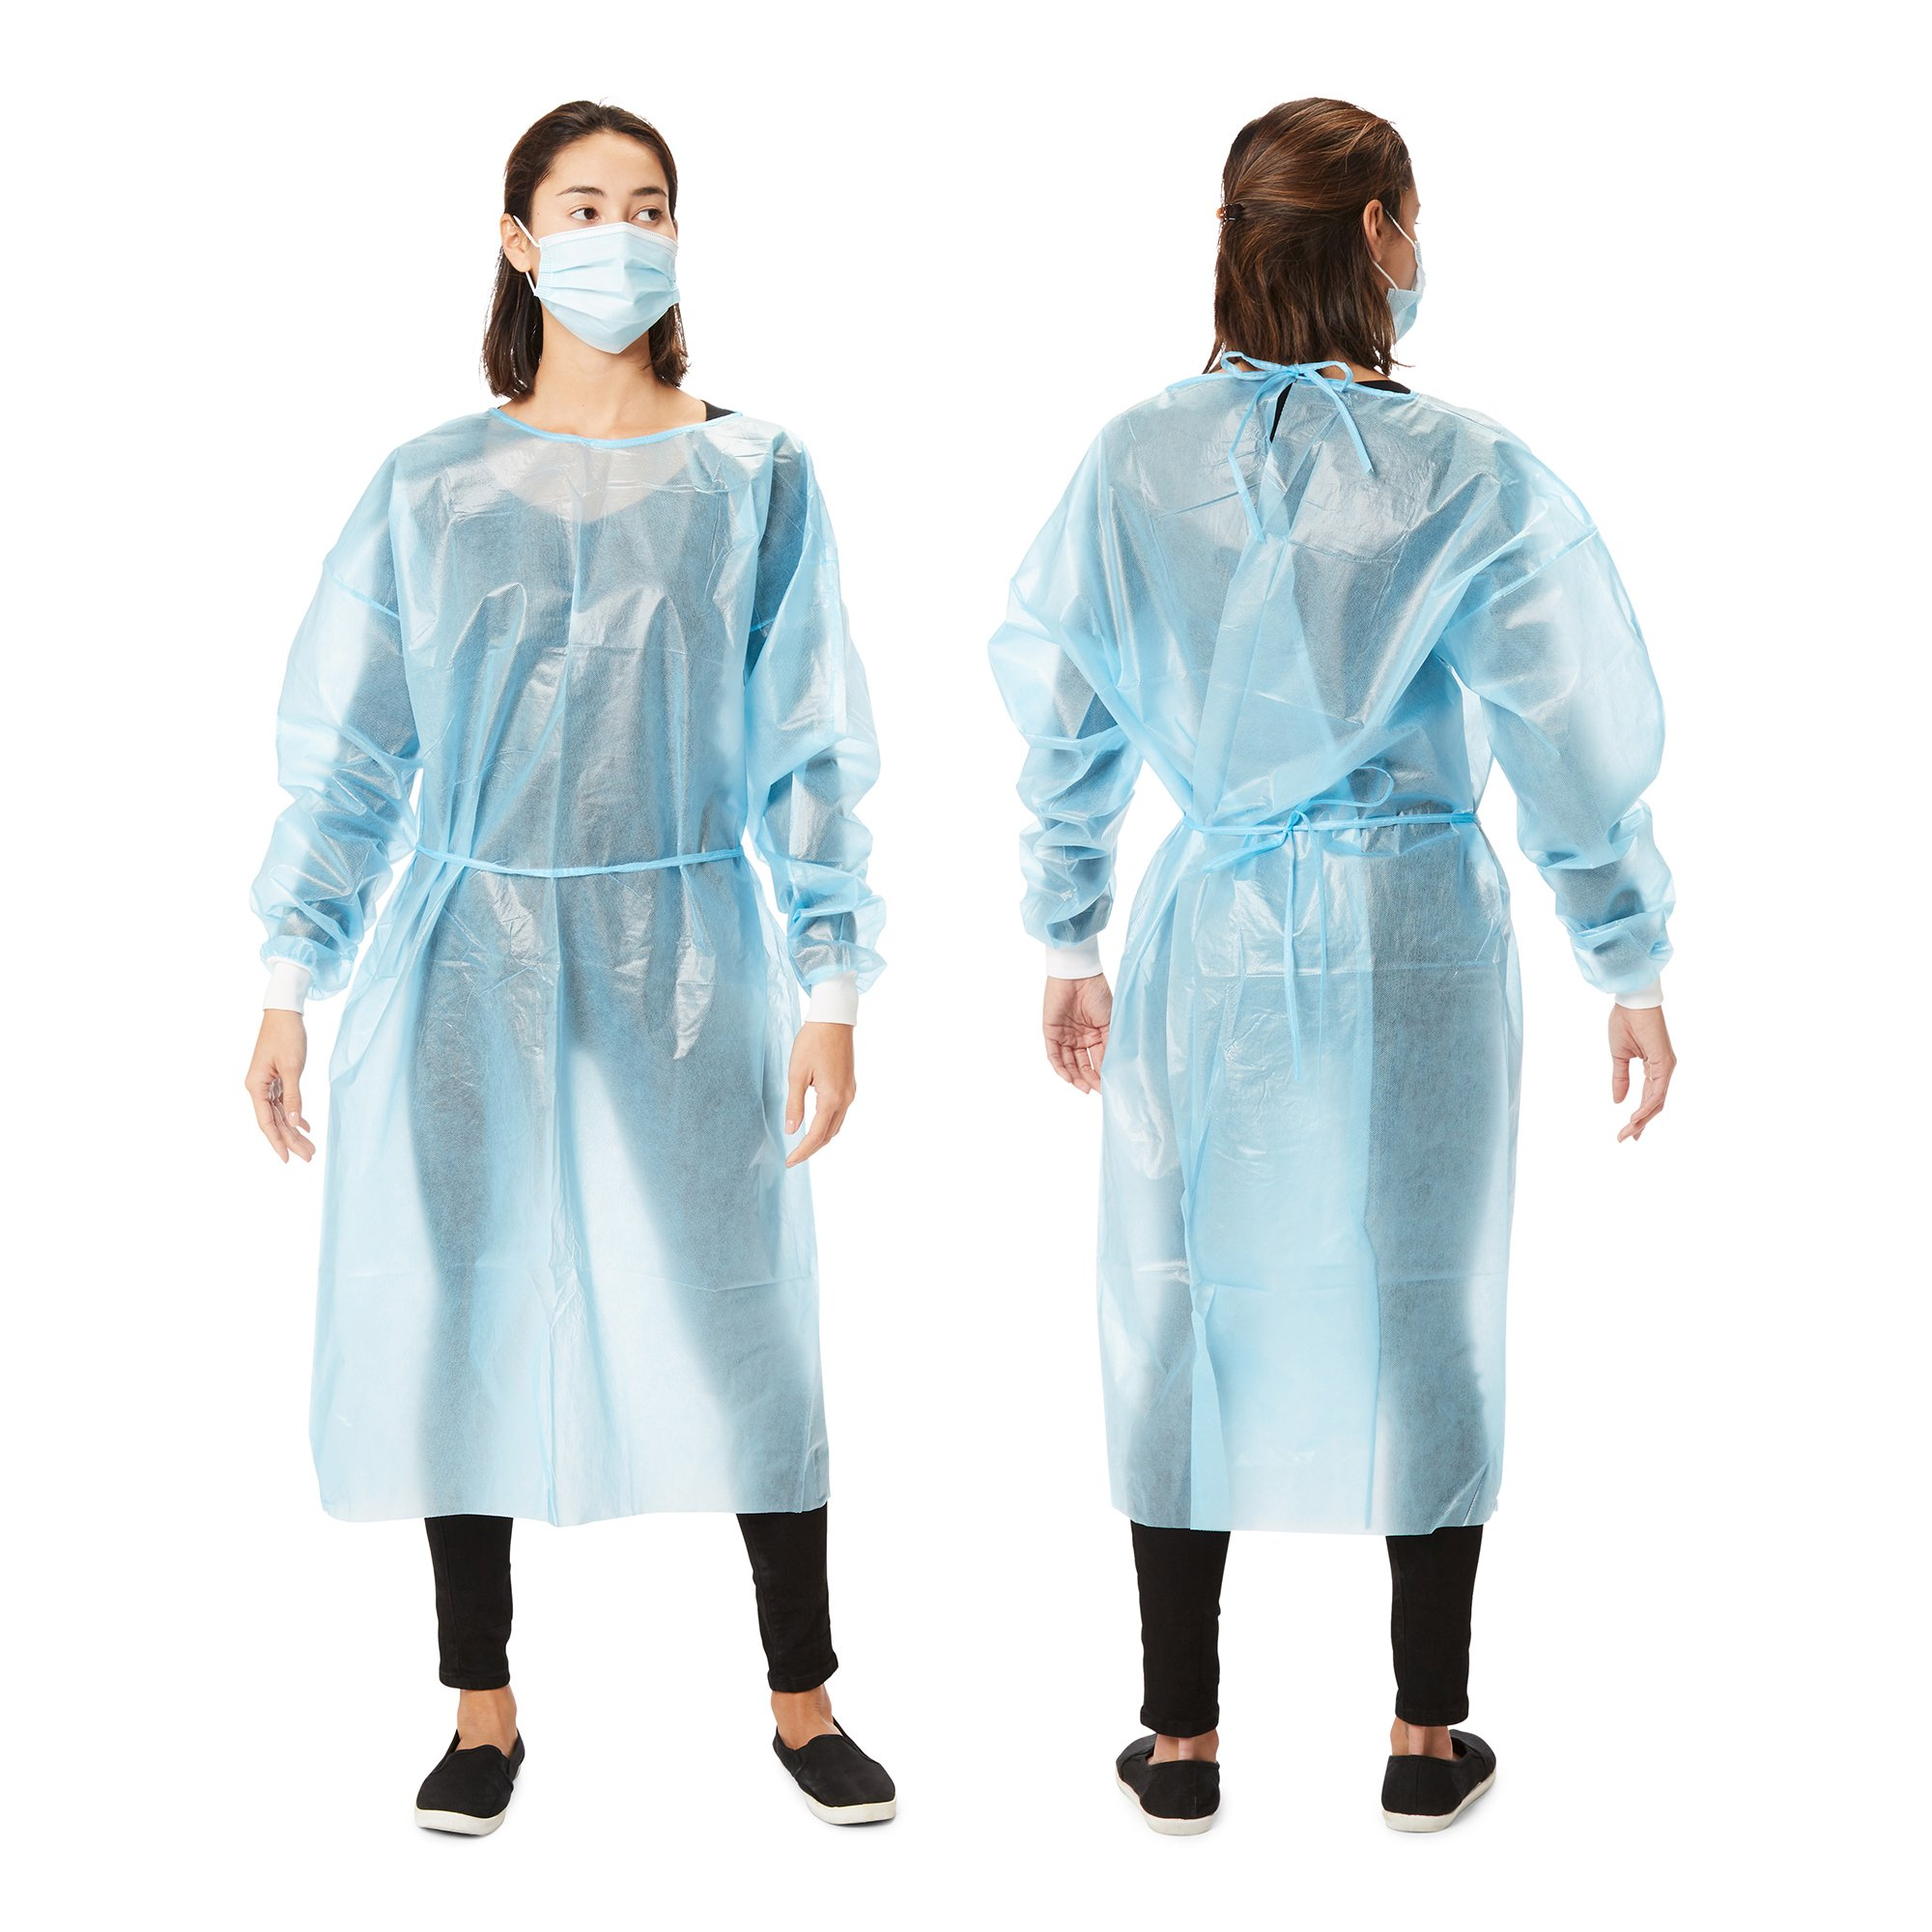 Picture of Protective Procedure Gown One Size Fits Most Blue NonSterile Disposable, 10 per Bag